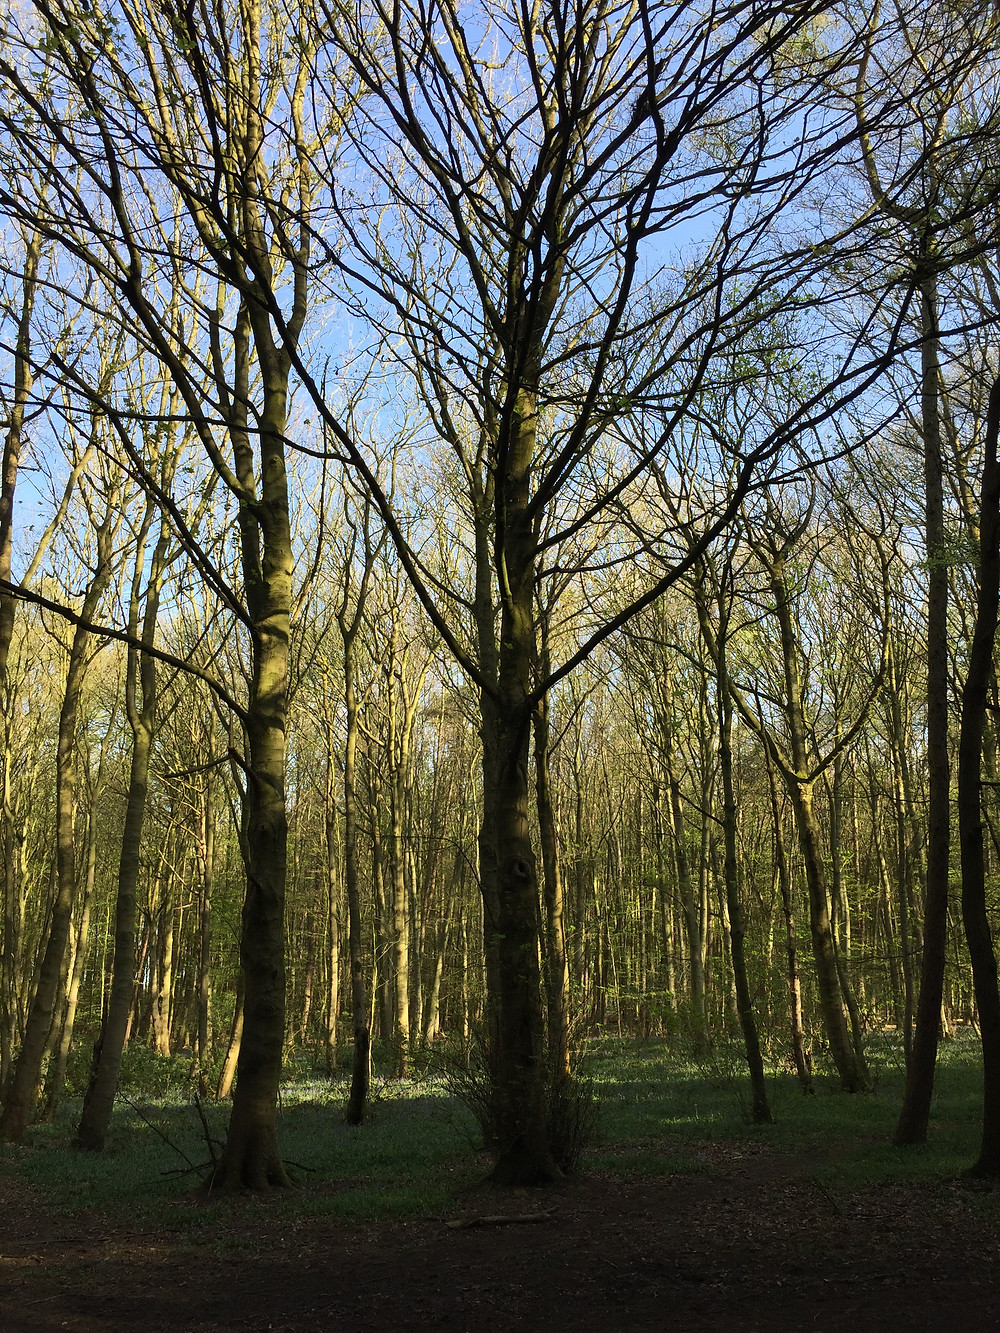 A Beech Tree woodland scape with the beginnings of a green carpet at the base of the trees, amongst last years leaves.